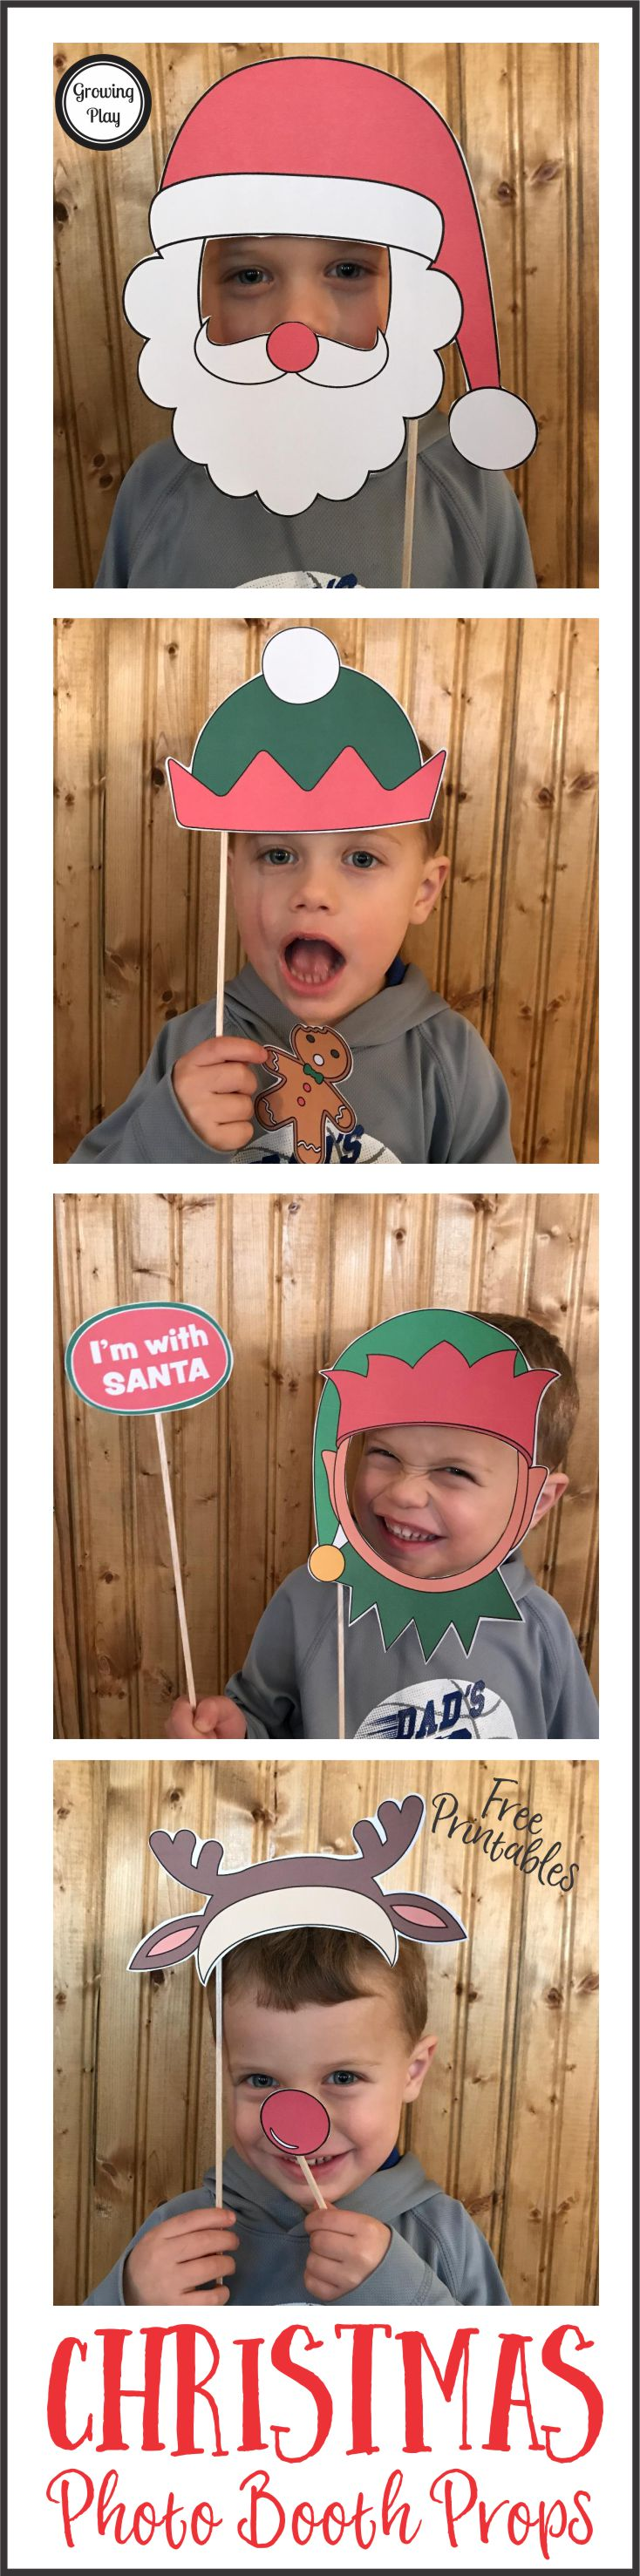 Christmas Photo Booth Props from Growing Play FREE